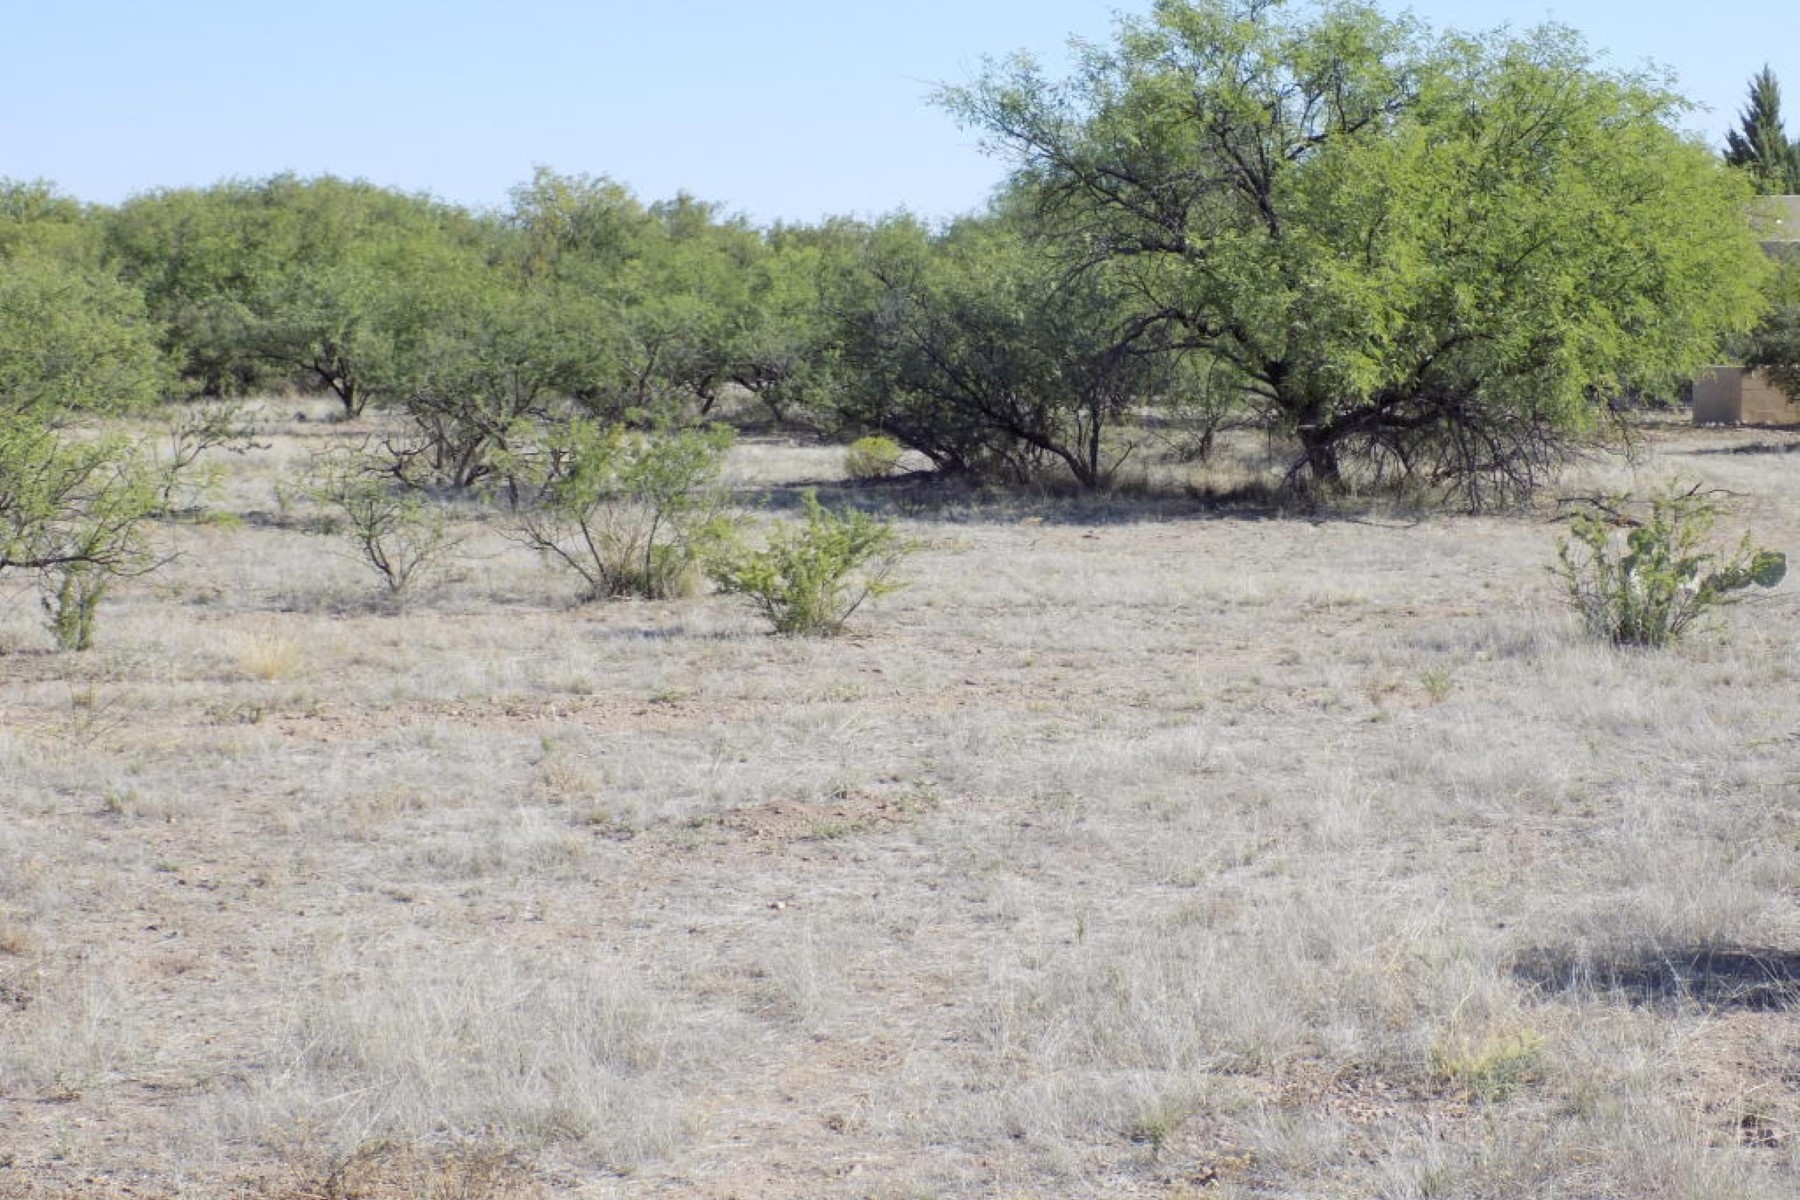 Terreno por un Venta en Large 1.16 acre lot at the North end. TBD CIRCULO DE ANZA Tubac, Arizona 85646 Estados Unidos